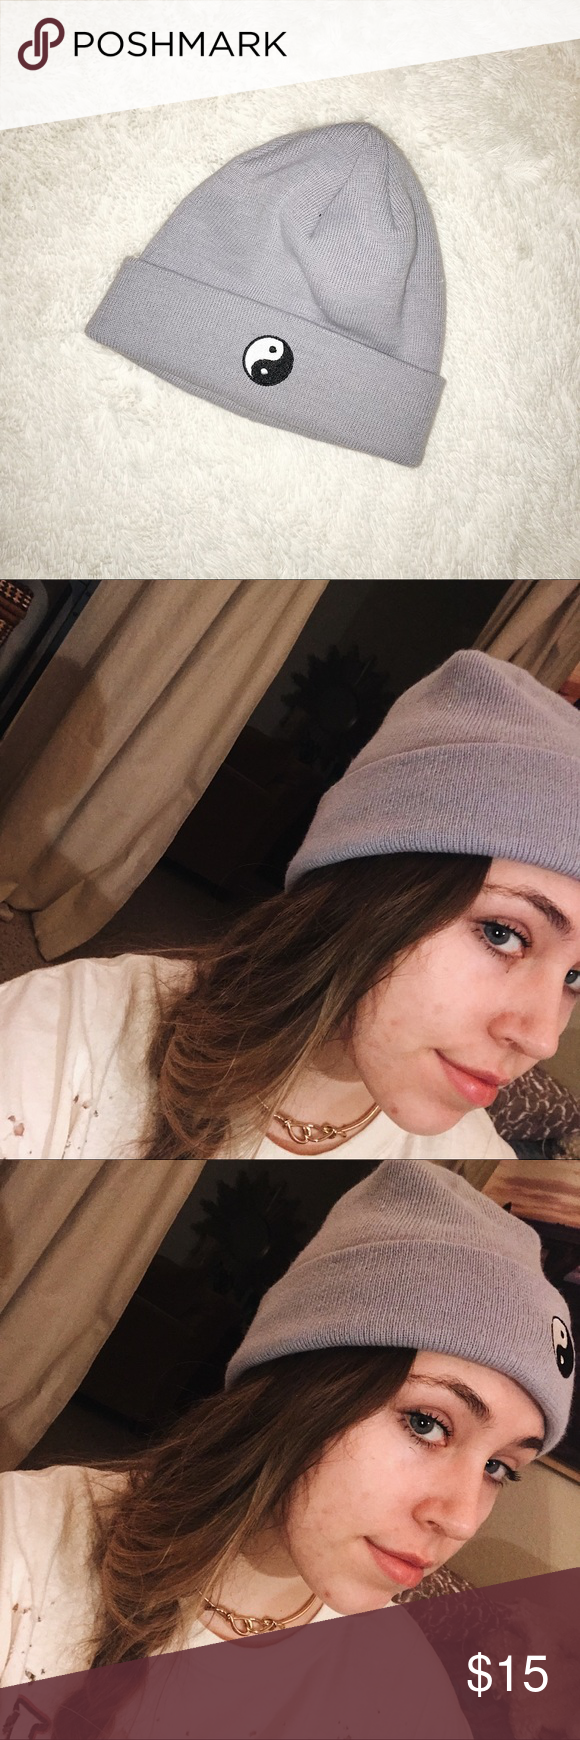 Lavender Periwinkle Ying Yang Beanie Periwinkle Color Urban Outfitters Accessories Purple Periwinkle